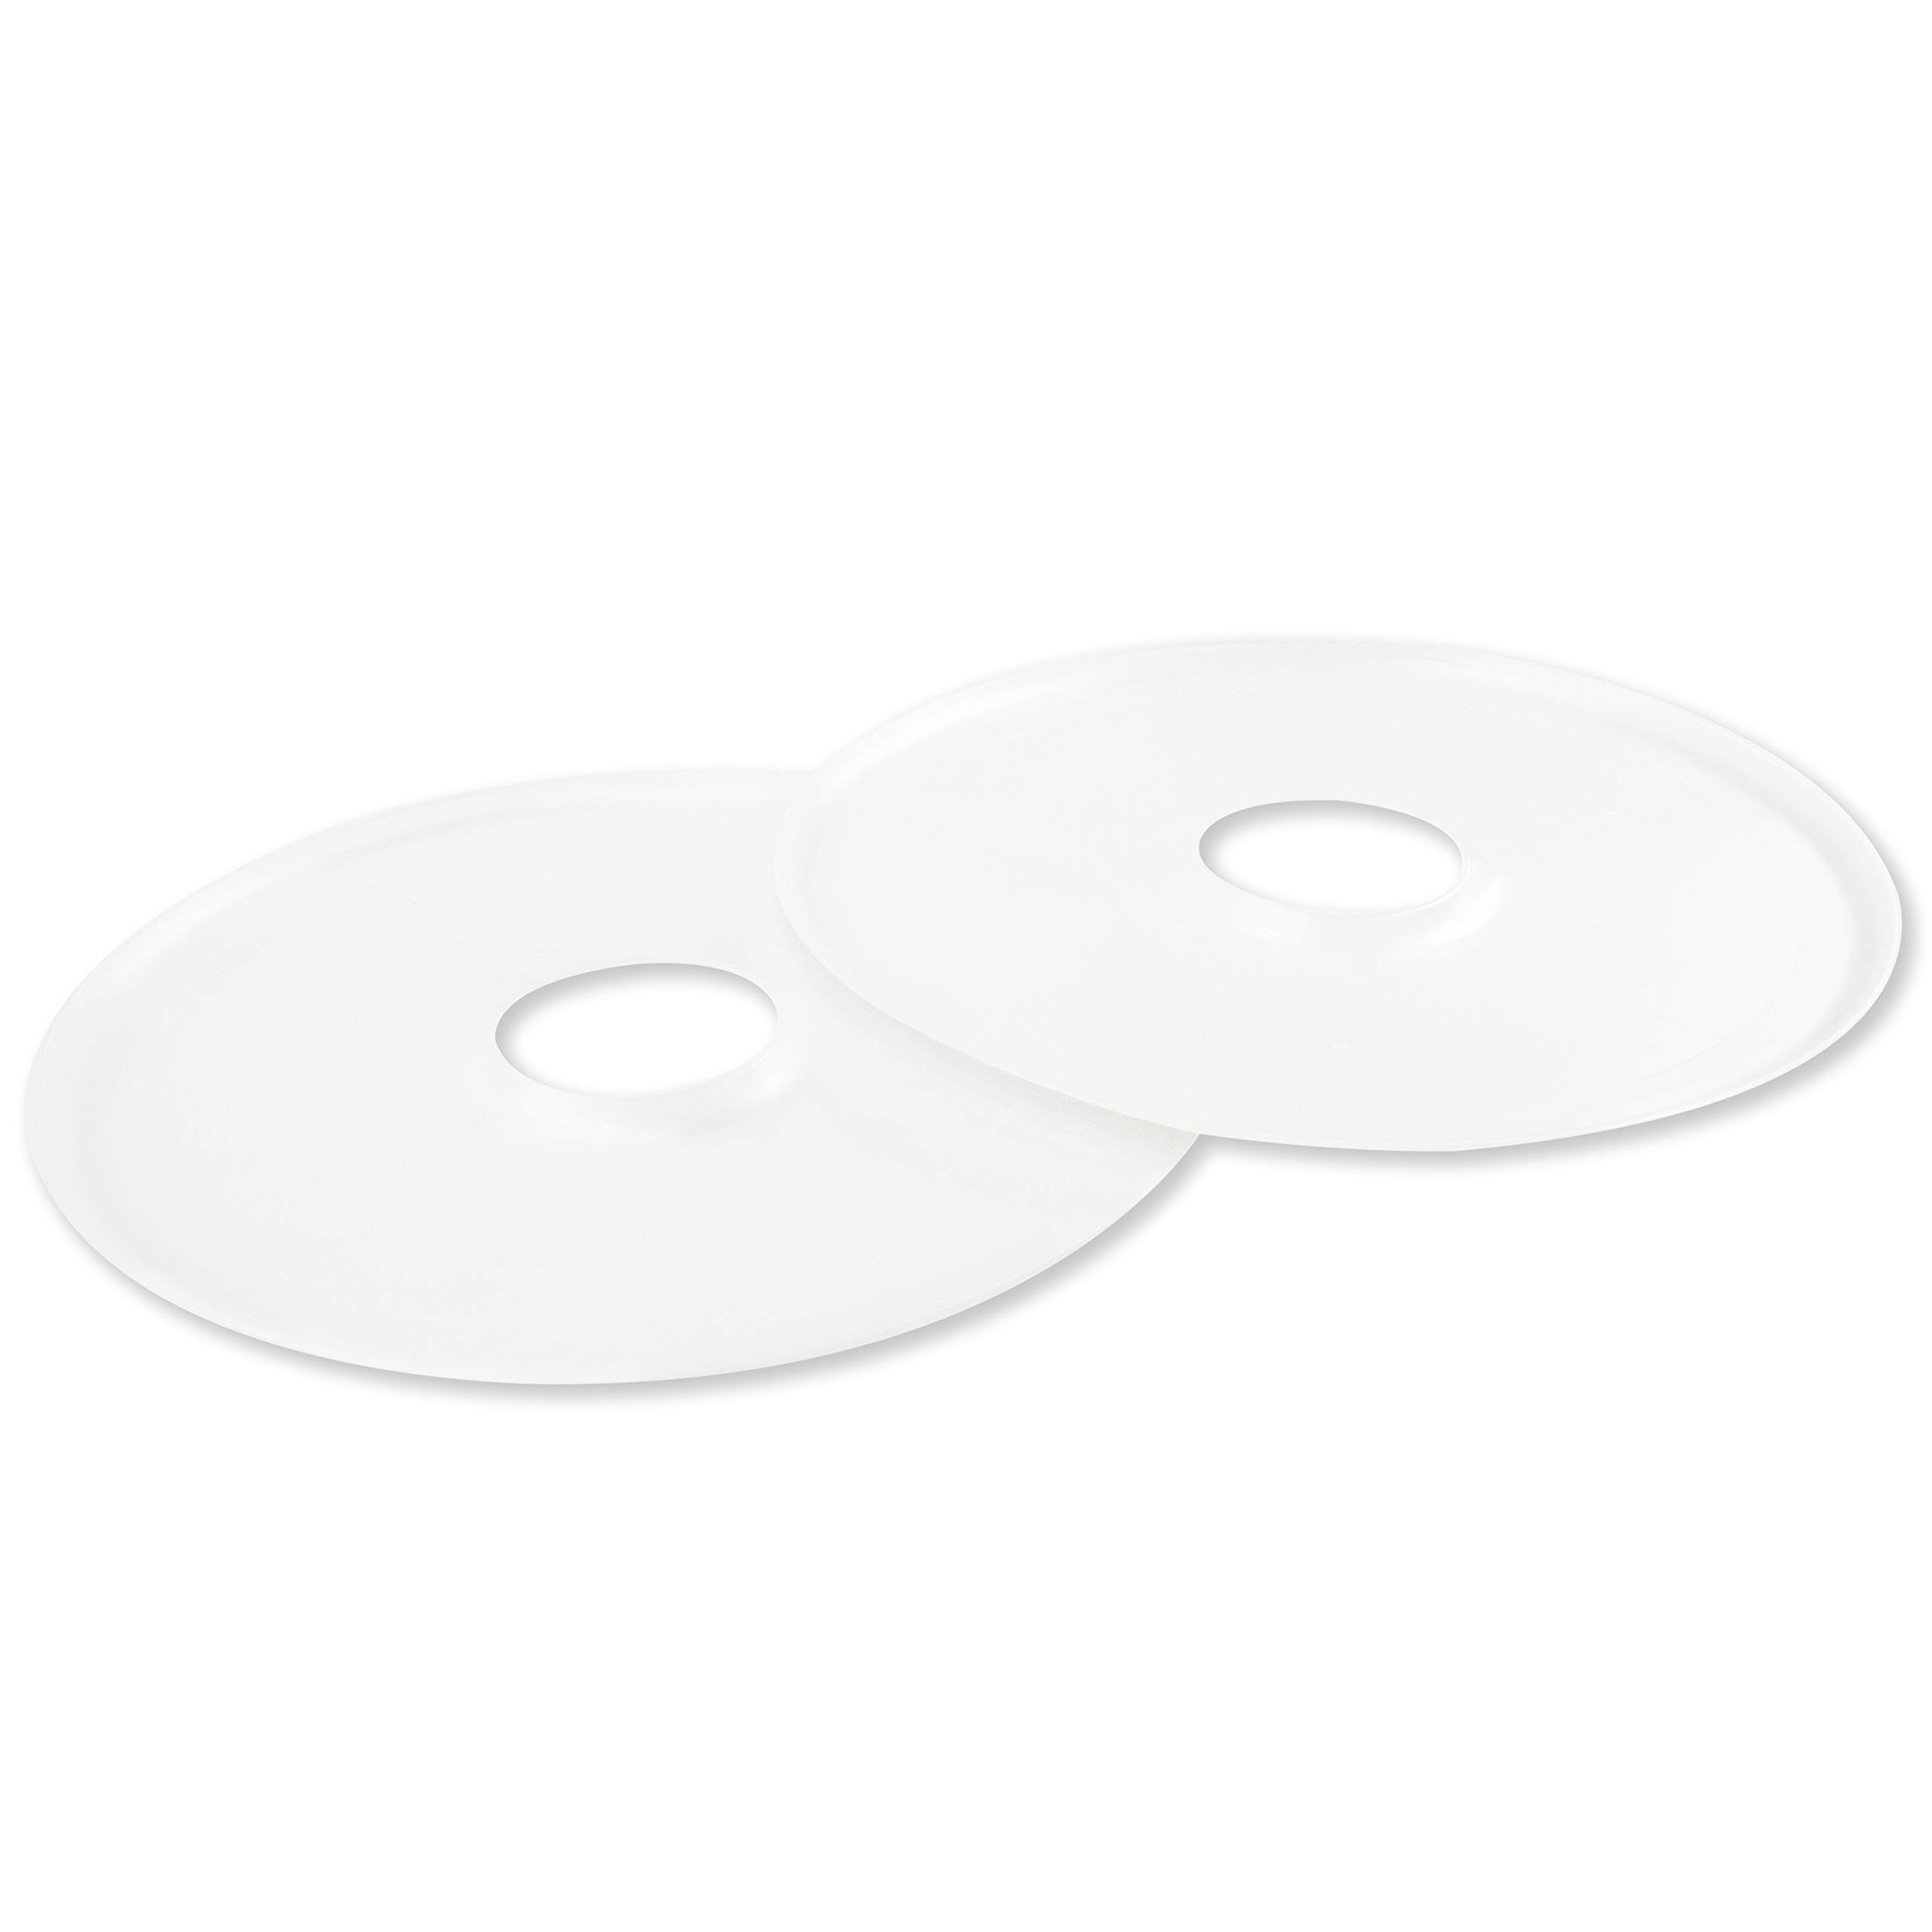 Nesco American Harvest SLD-2-6, Fruit Roll-Up Sheet for Dehydrators FD-1010, FD-1018A, FD-1040, FD-80, FD-80CN, Set of 2, White by Nesco